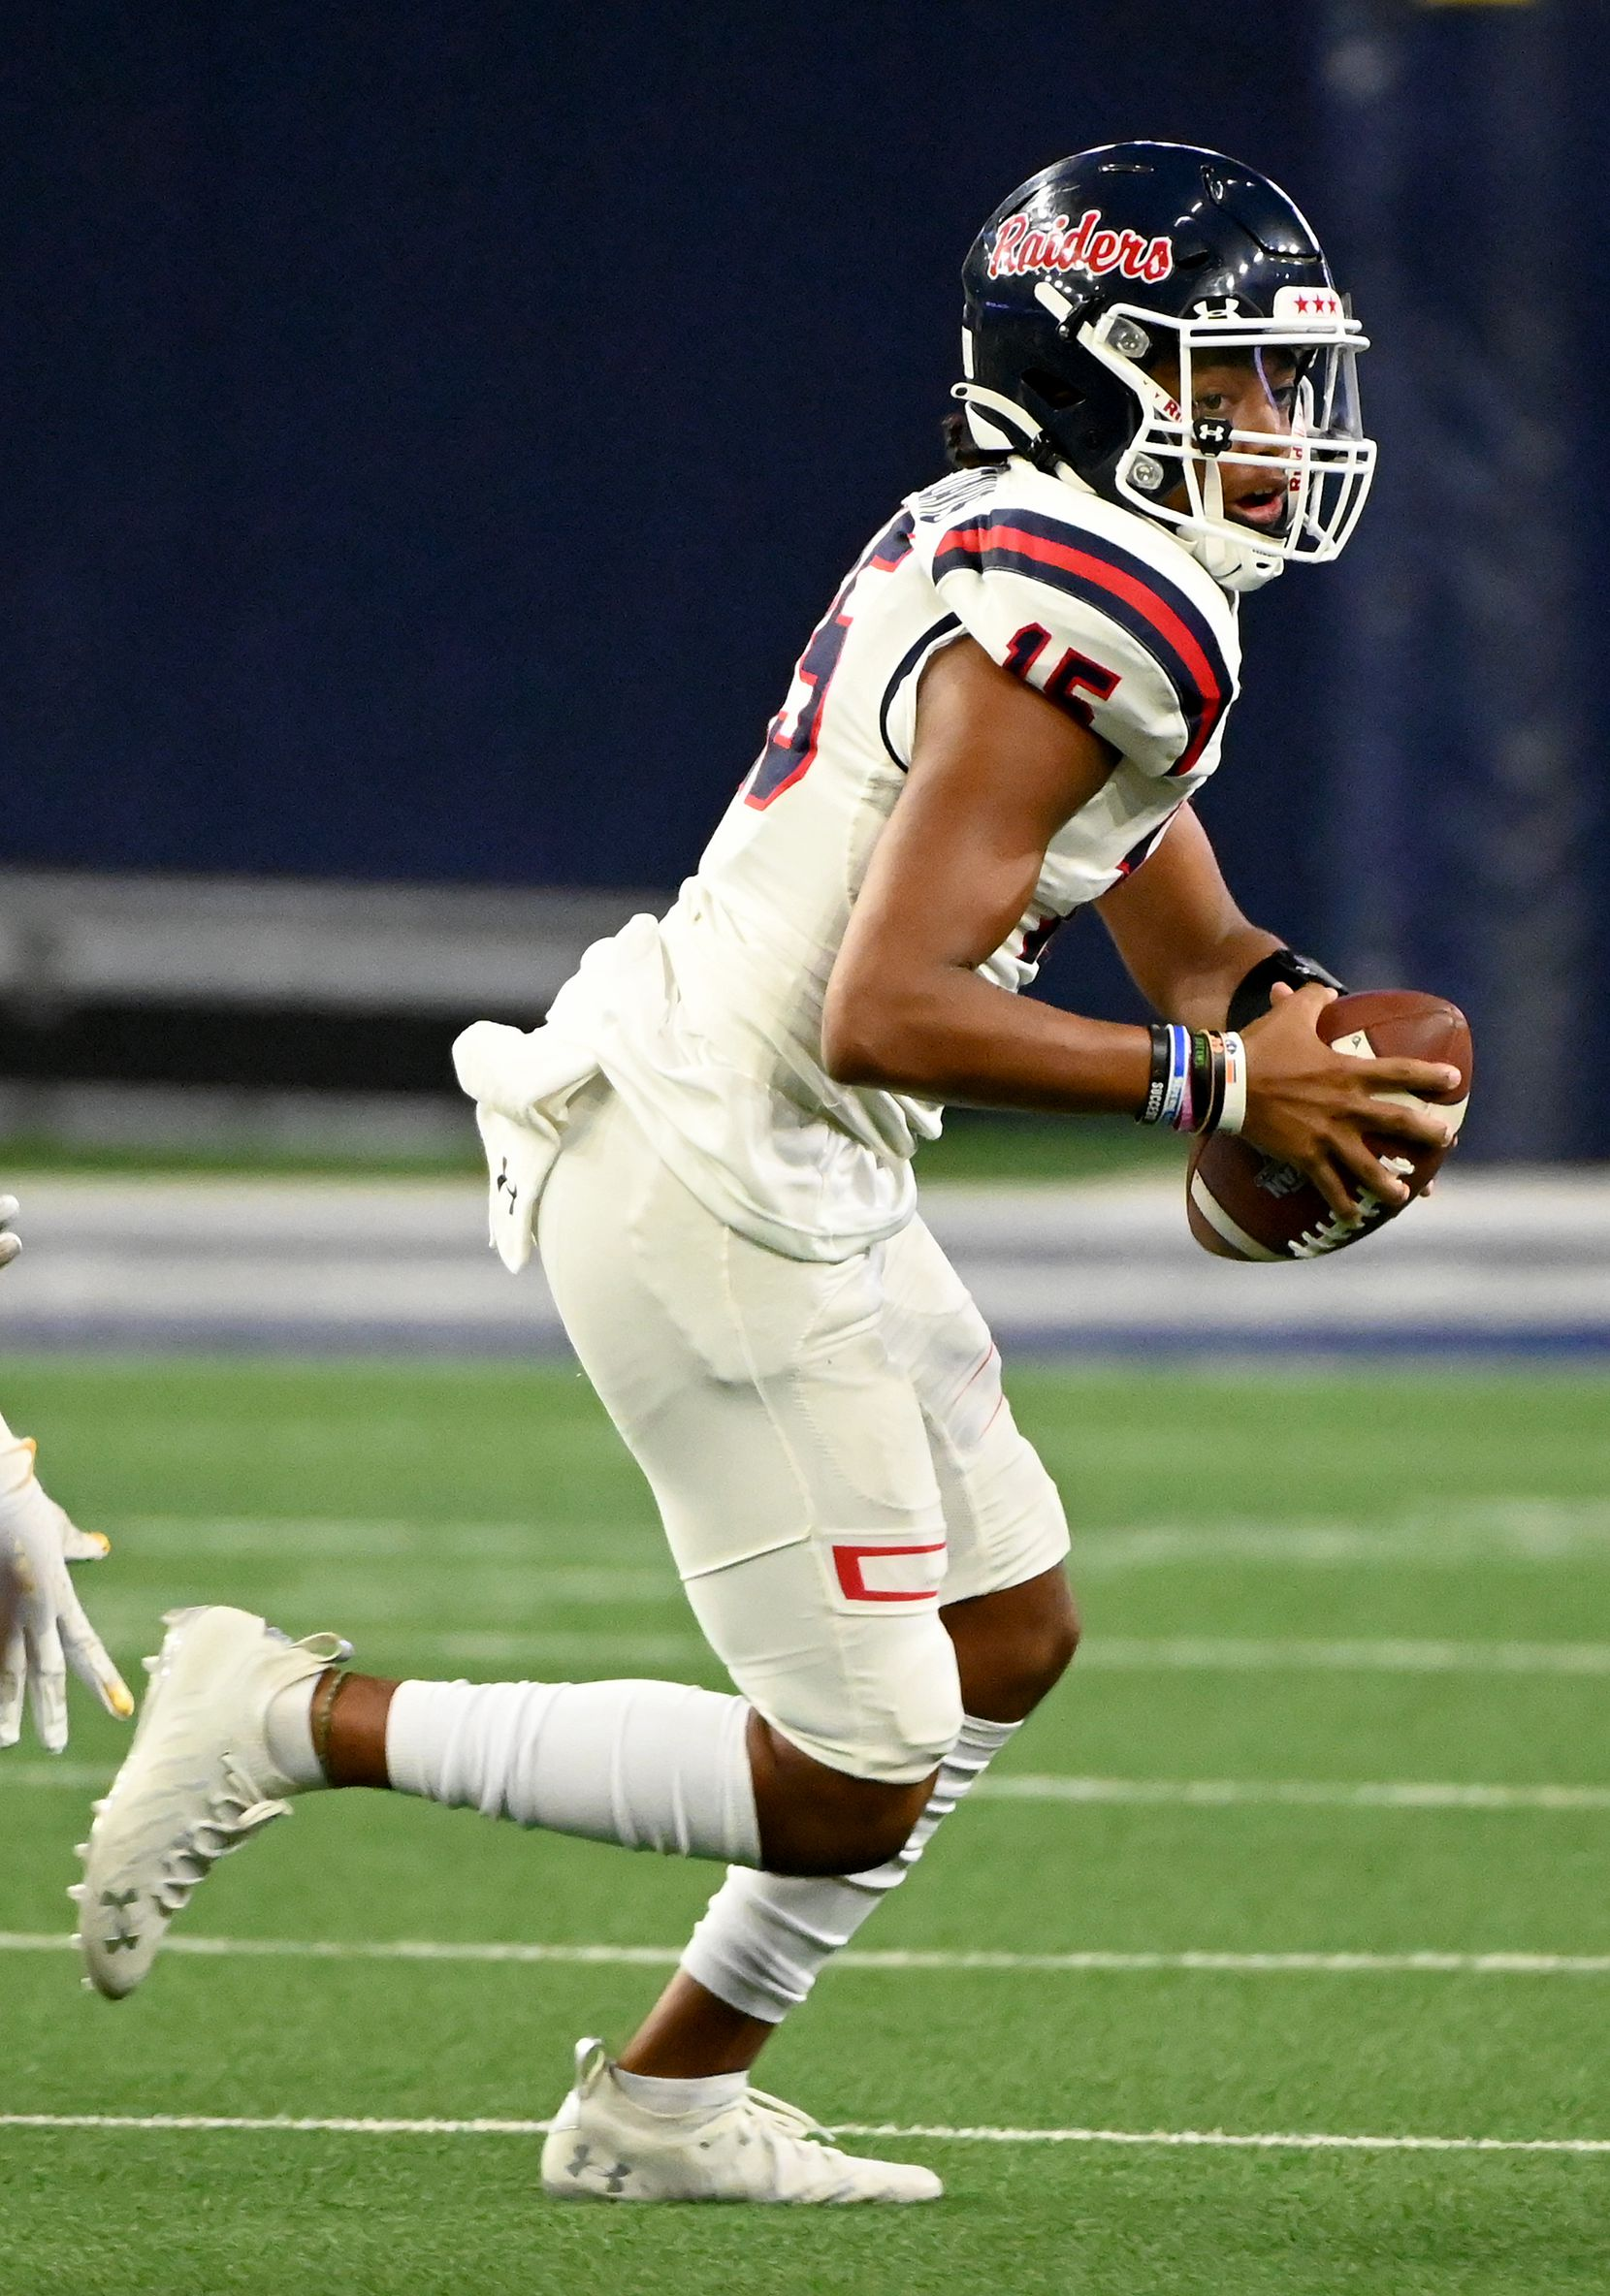 Denton Ryan's Khalon Davis looks to pass downfield in the first half during a high school football game between Longview and Denton Ryan, Saturday, Aug. 28, 2021, in Frisco, Texas. (Matt Strasen/Special Contributor)